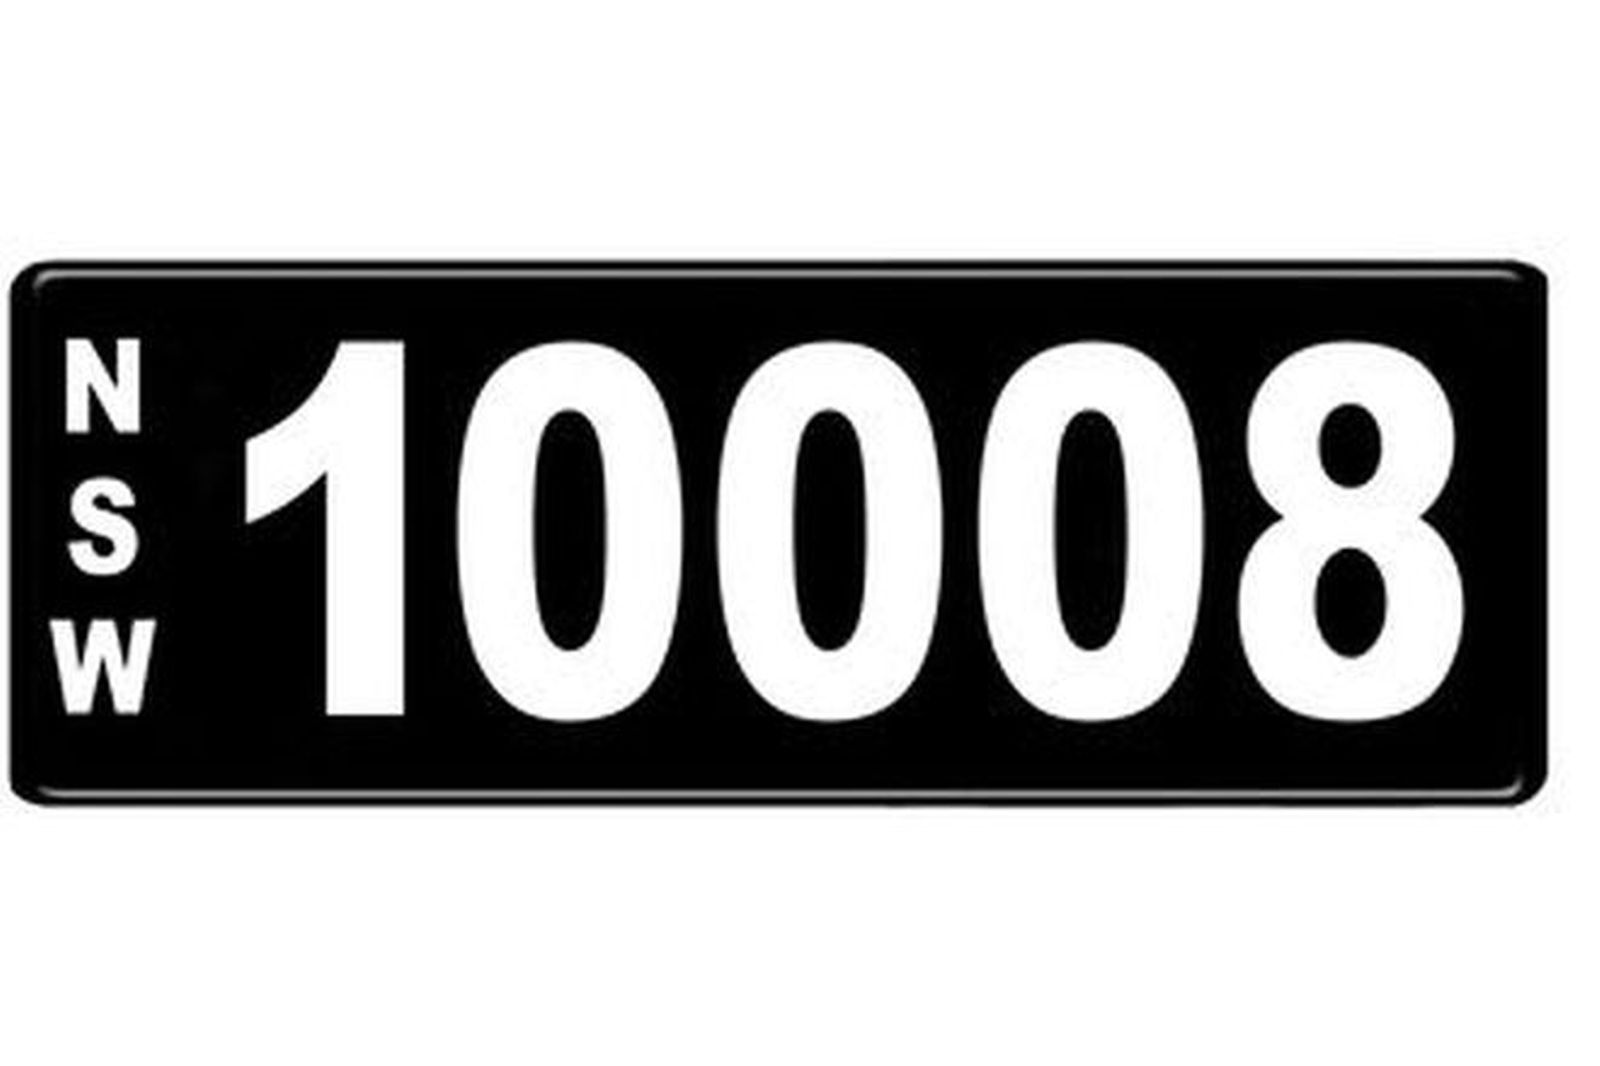 Number Plates - NSW Numerical Number Plates '10008'